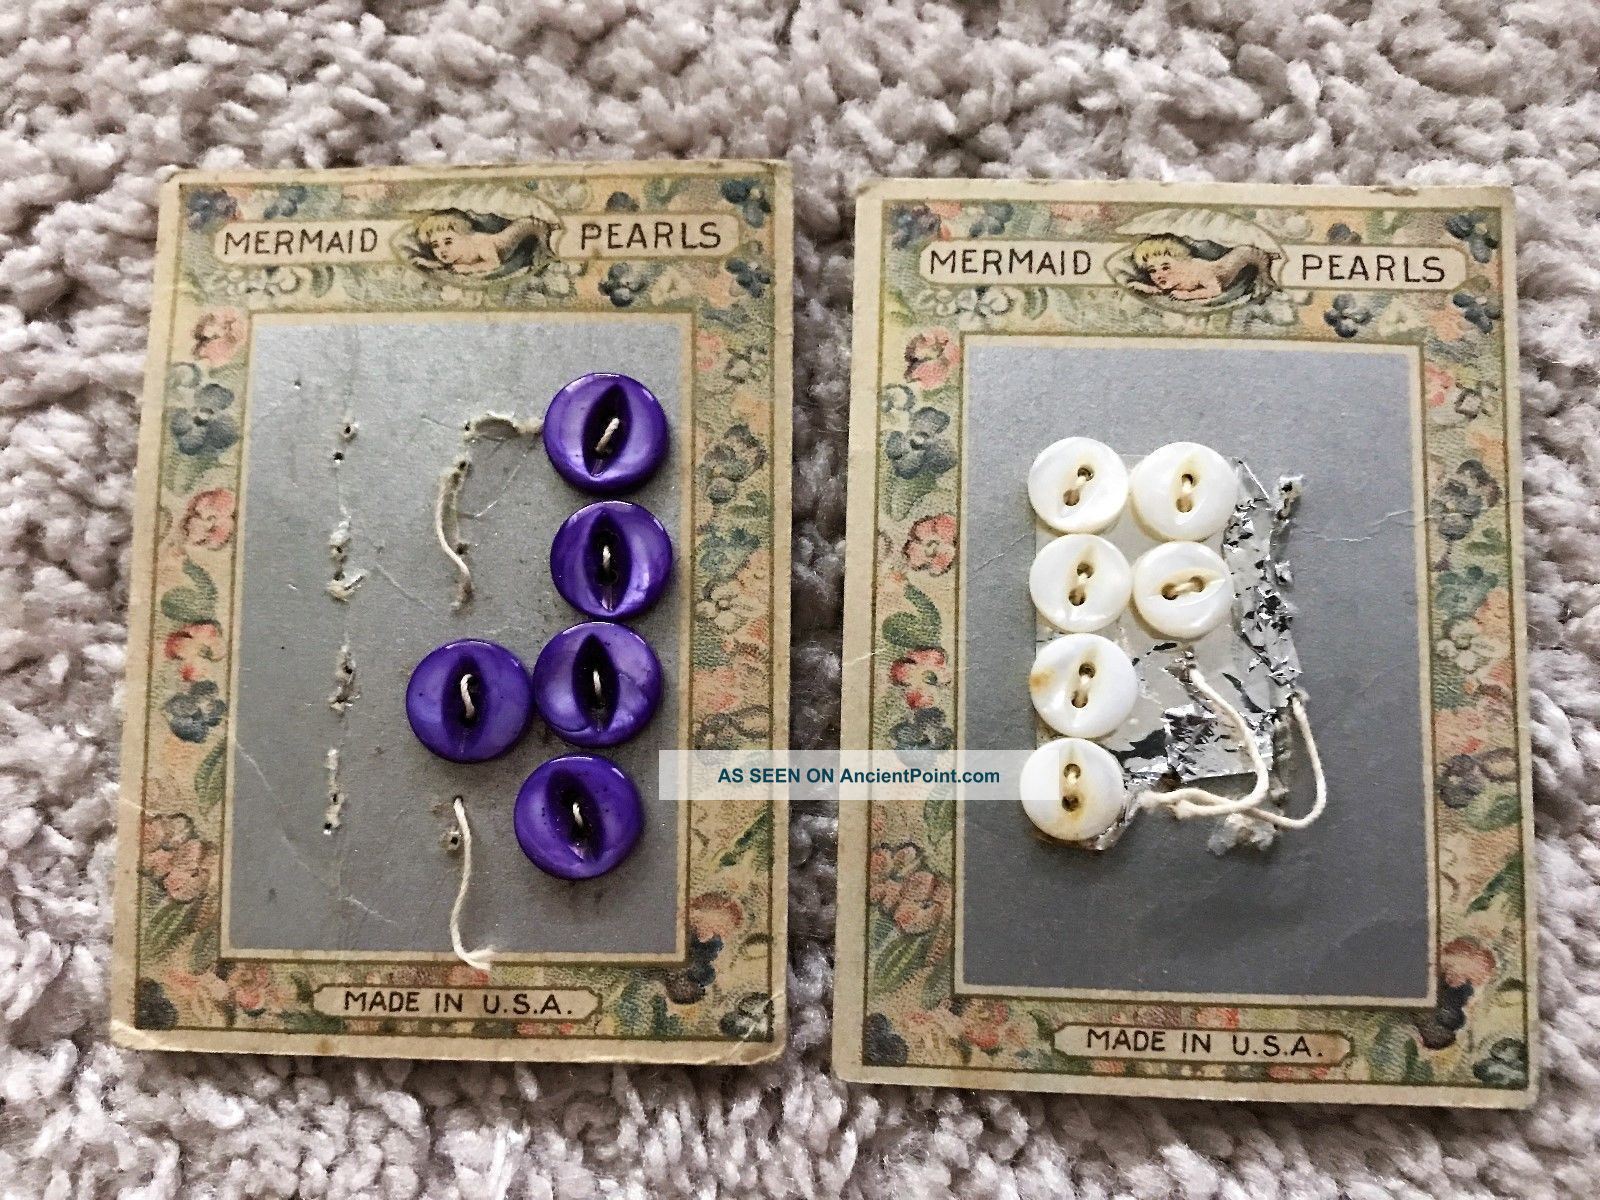 Antique Mermaid Pearls Mother Of Pearl Buttons Cards 1920 ' S Buttons photo